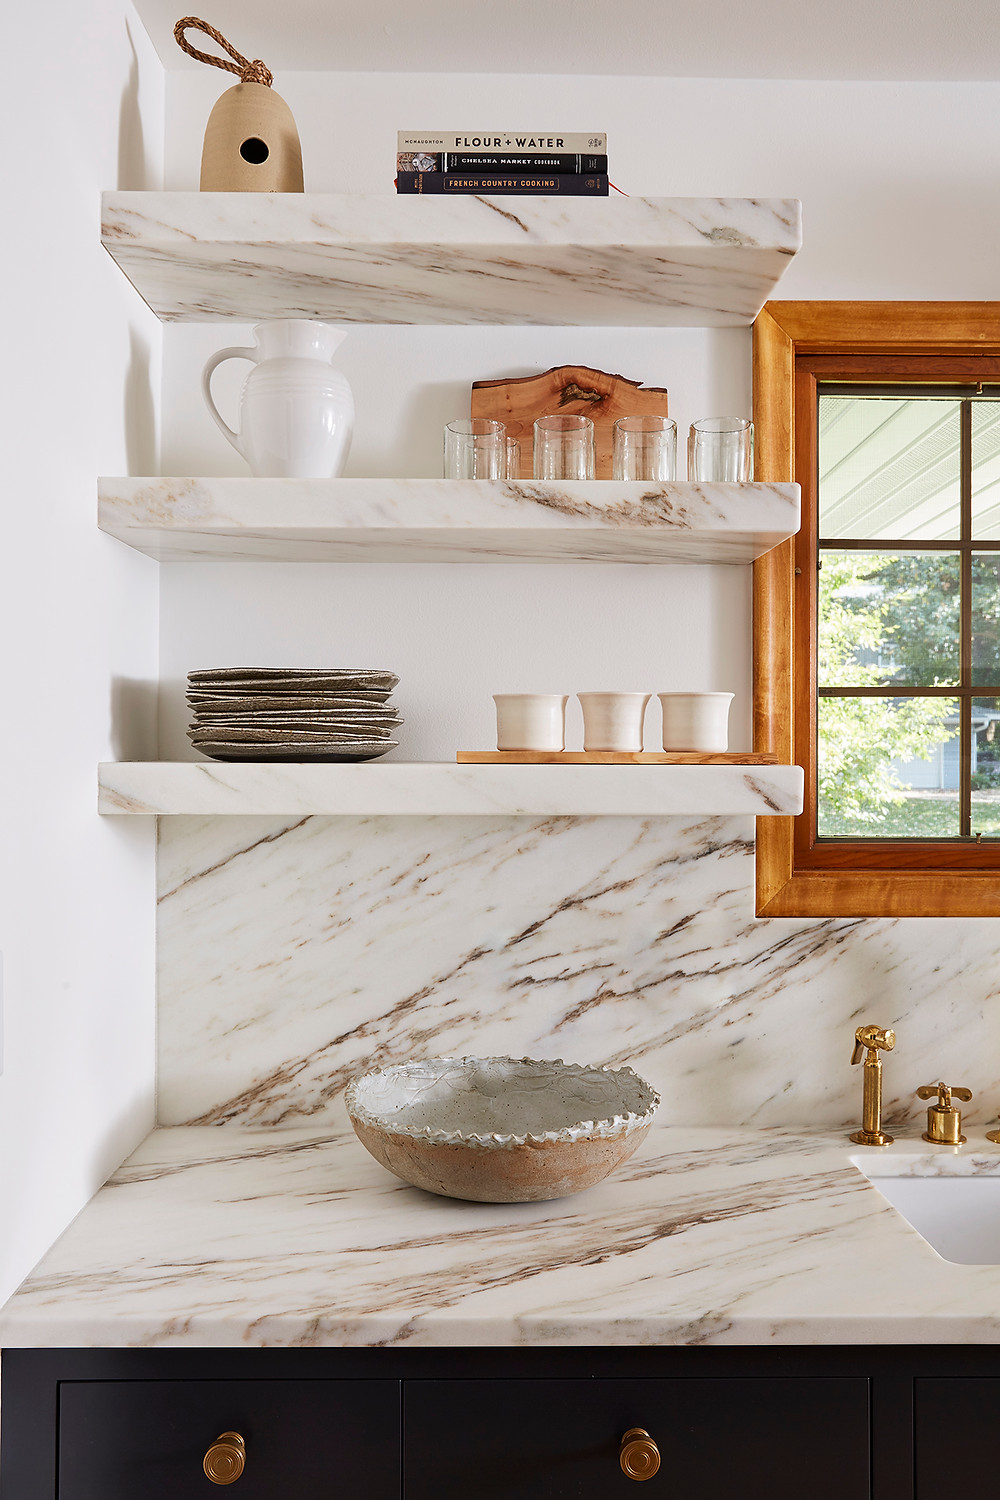 Custom Vermont Imperial Danby marble countertop, backsplash and floating shelves above custom inset cabinetry